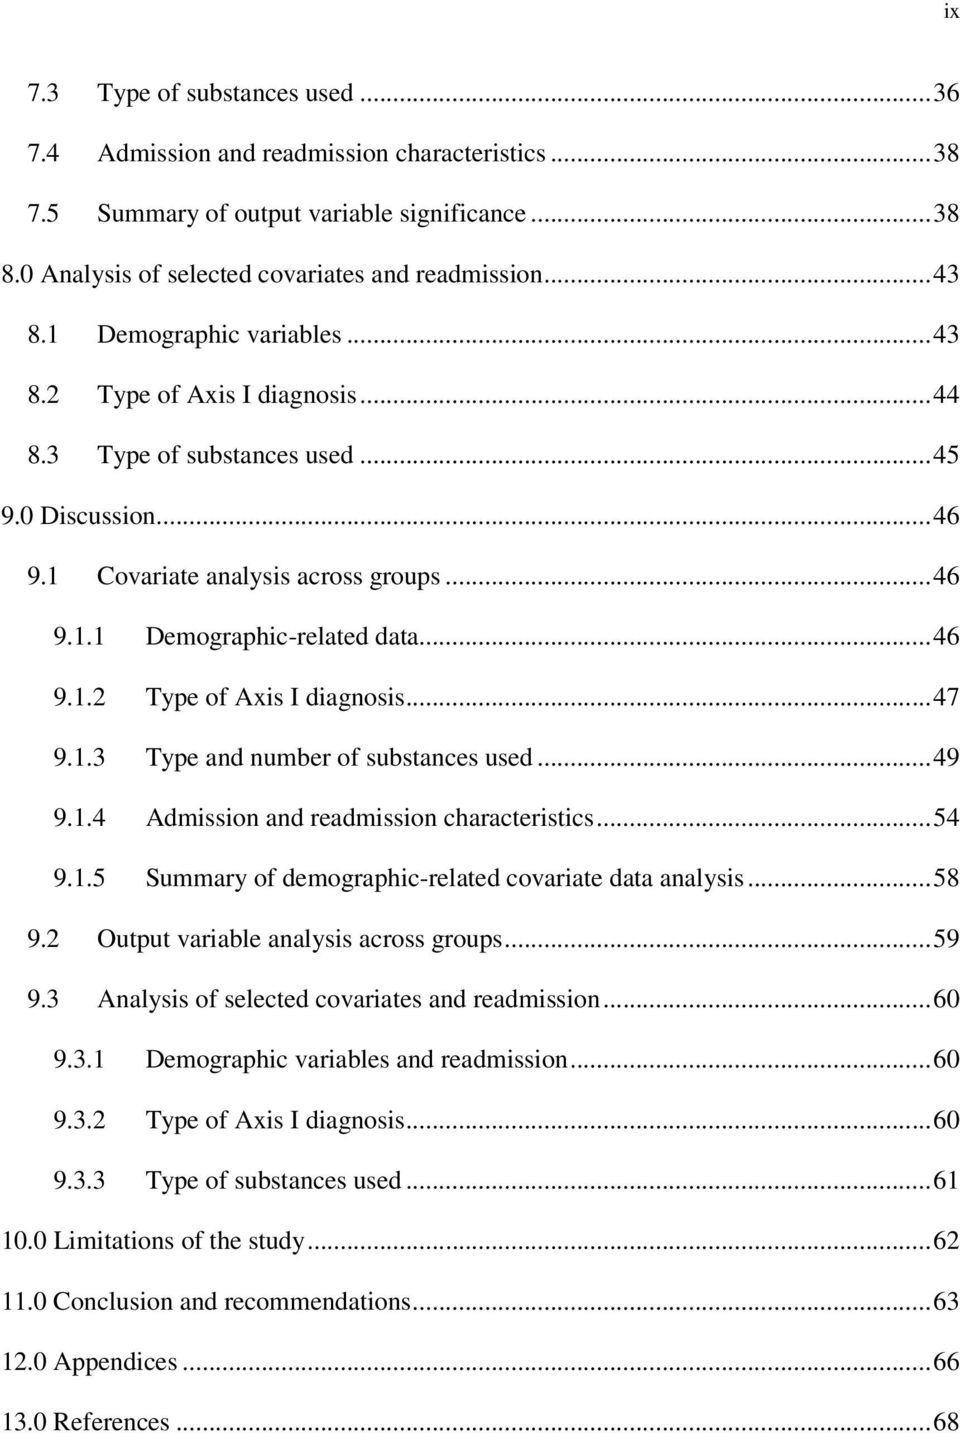 1.3 Type and number of substances used... 49 9.1.4 Admission and readmission characteristics... 54 9.1.5 Summary of demographic-related covariate data analysis... 58 9.